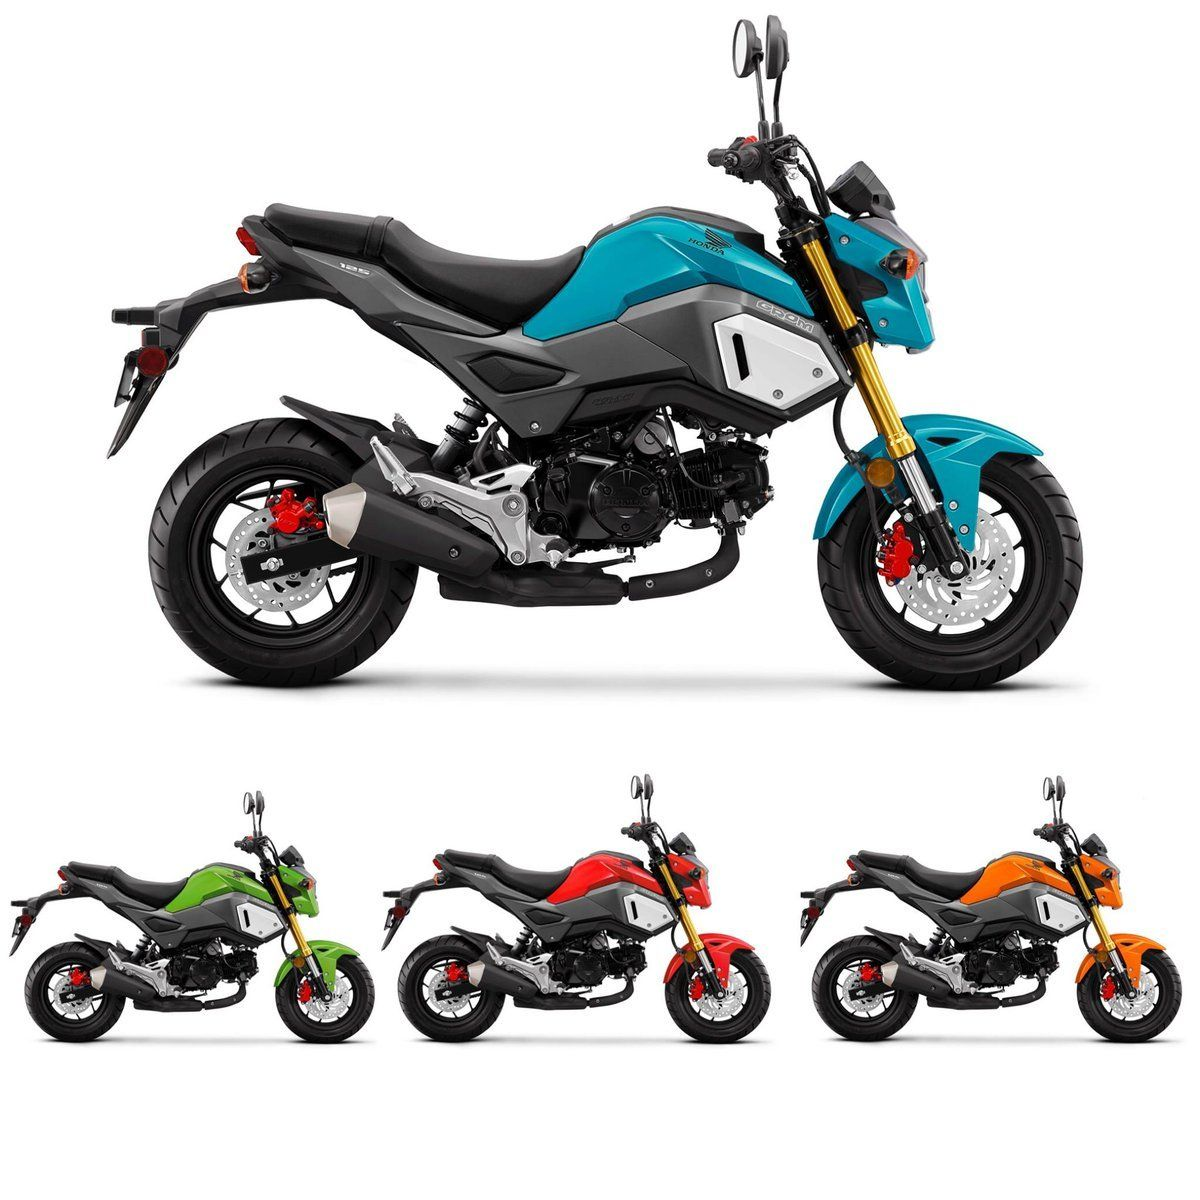 Honda Grom 2019 Colors Rumors from Carolina Honda On Twitter